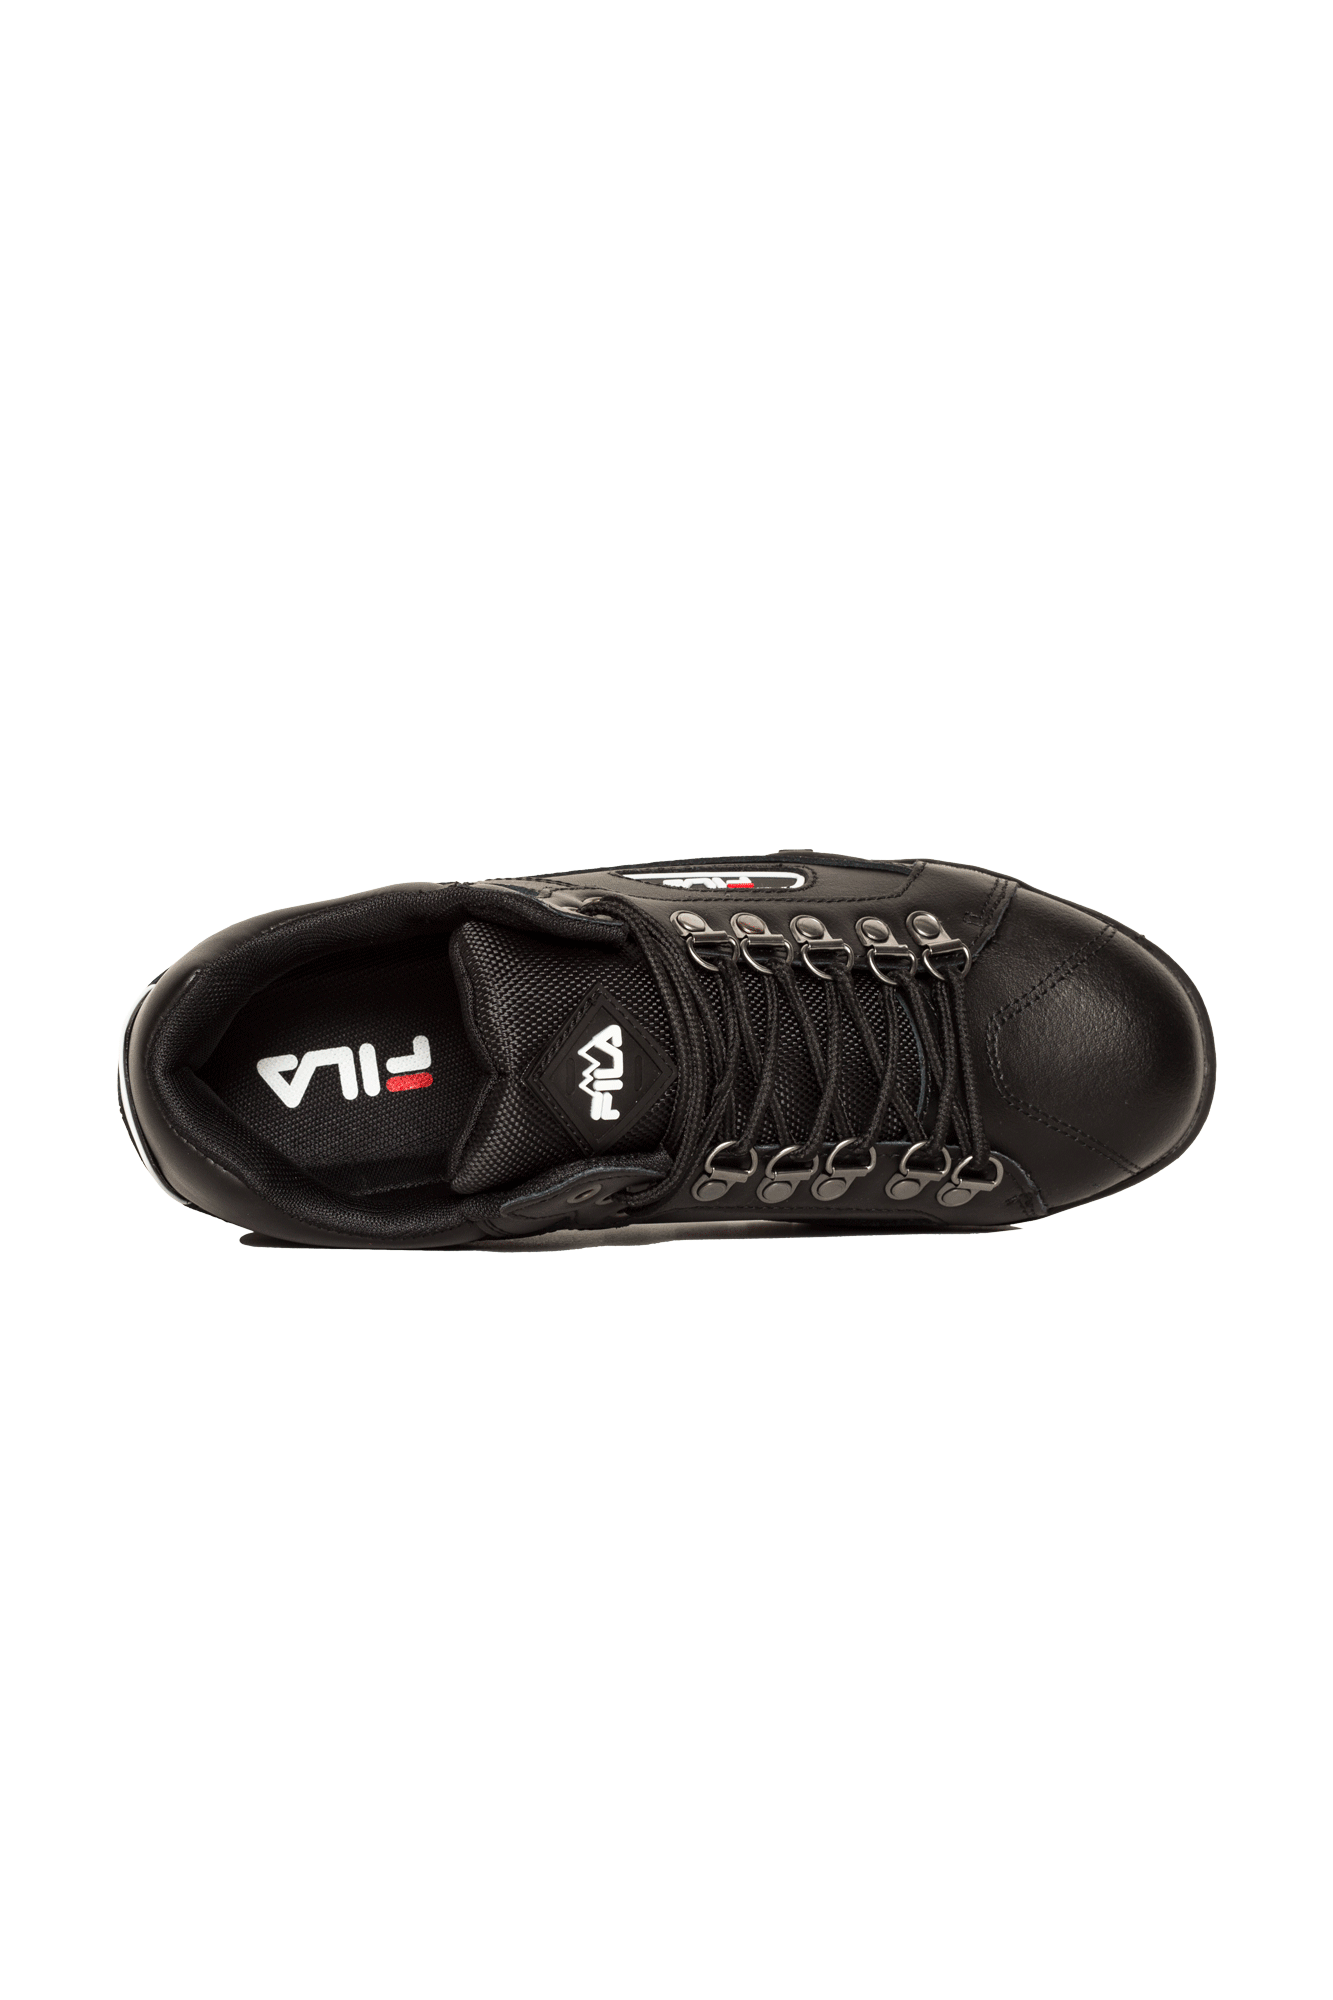 Fila Sneakers Trailblazer L Black 1010487#000#25Y#8 - One Block Down